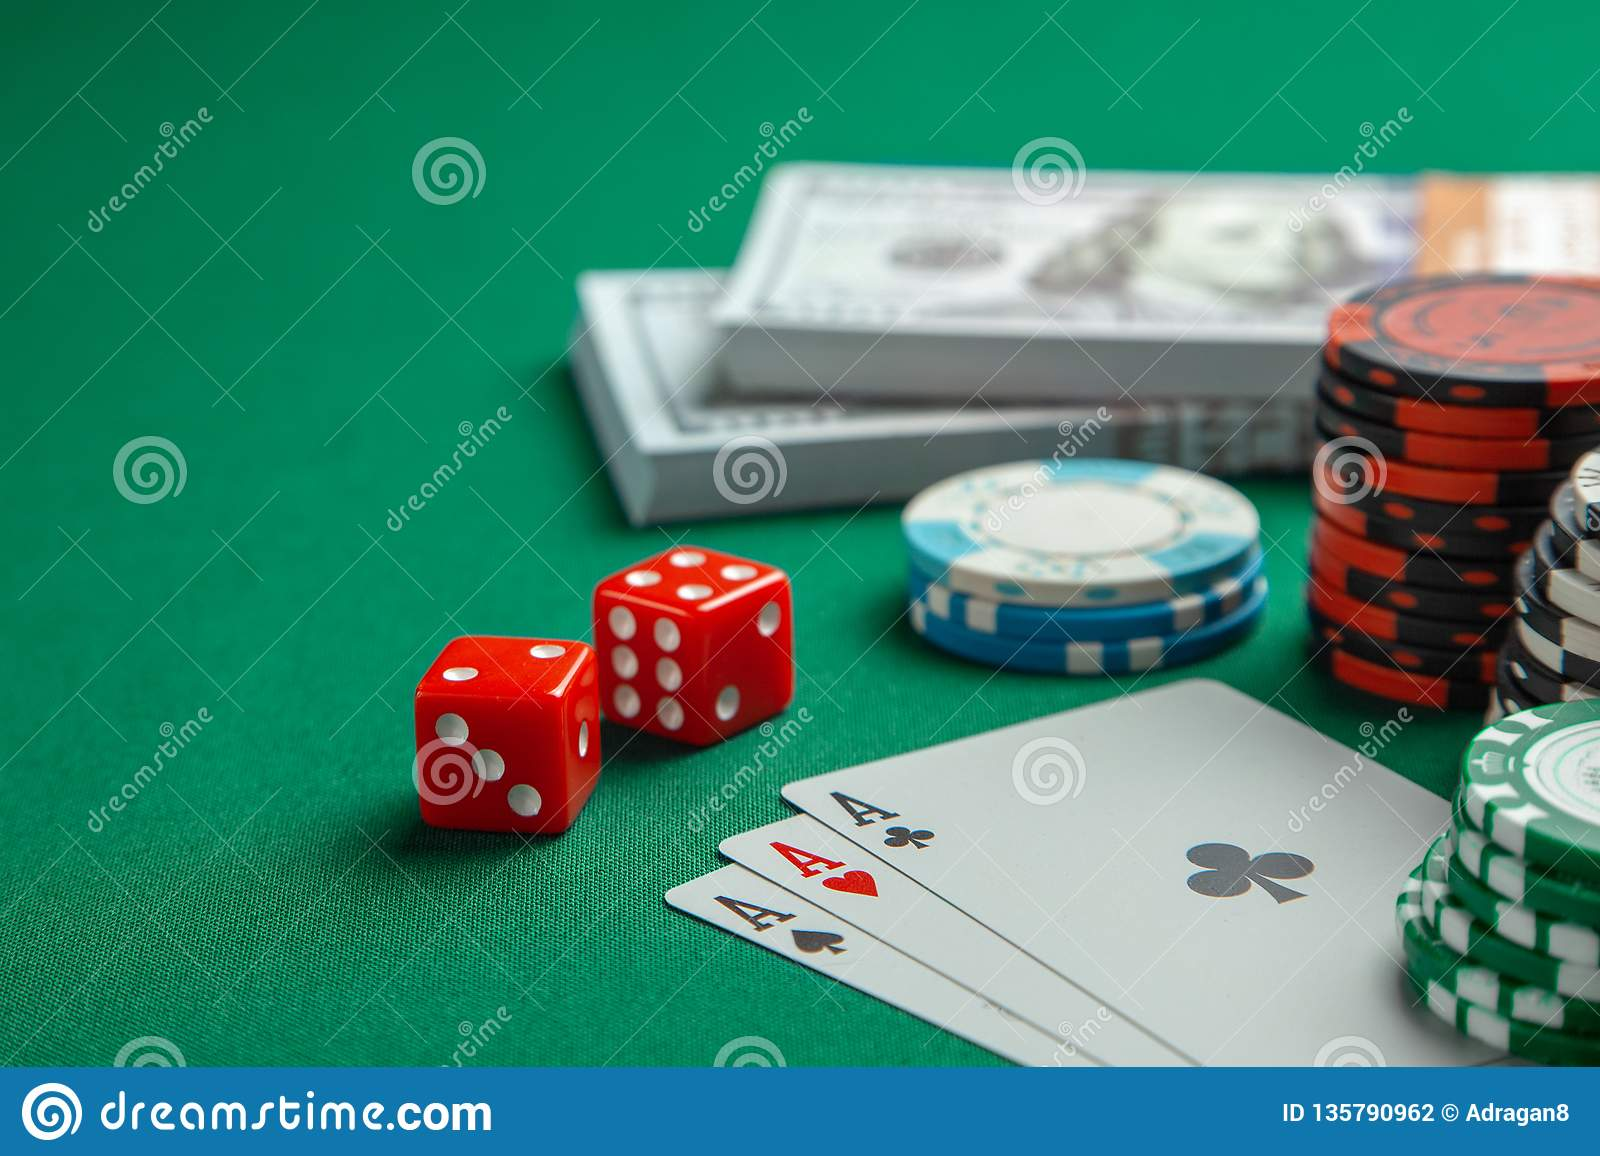 Concept of gambling in casino, sports poker. Playing cards with dice and colored chips with cash money dollars on green table.